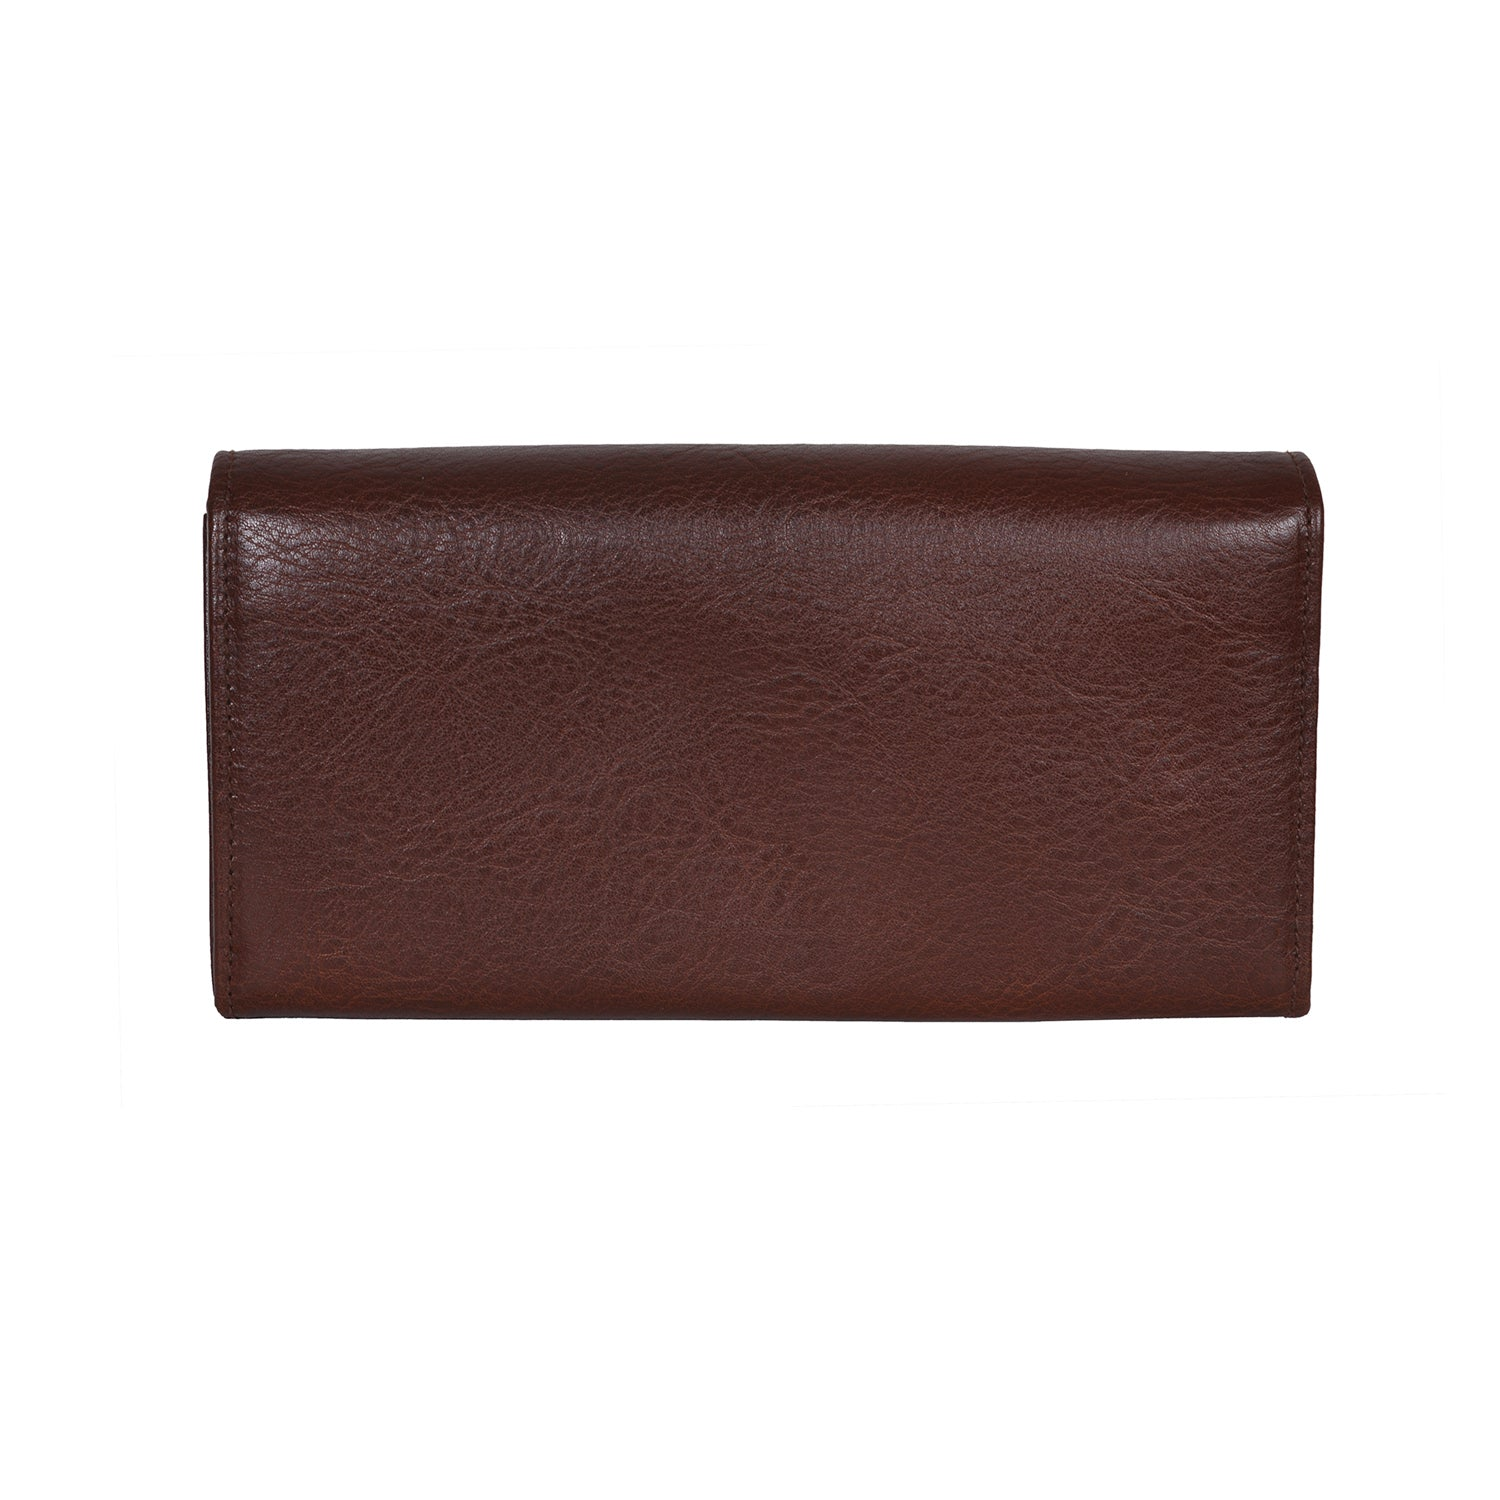 IL BISONTE WOMEN'S LONG WALLET IN BROWN  COWHIDE LEATHER